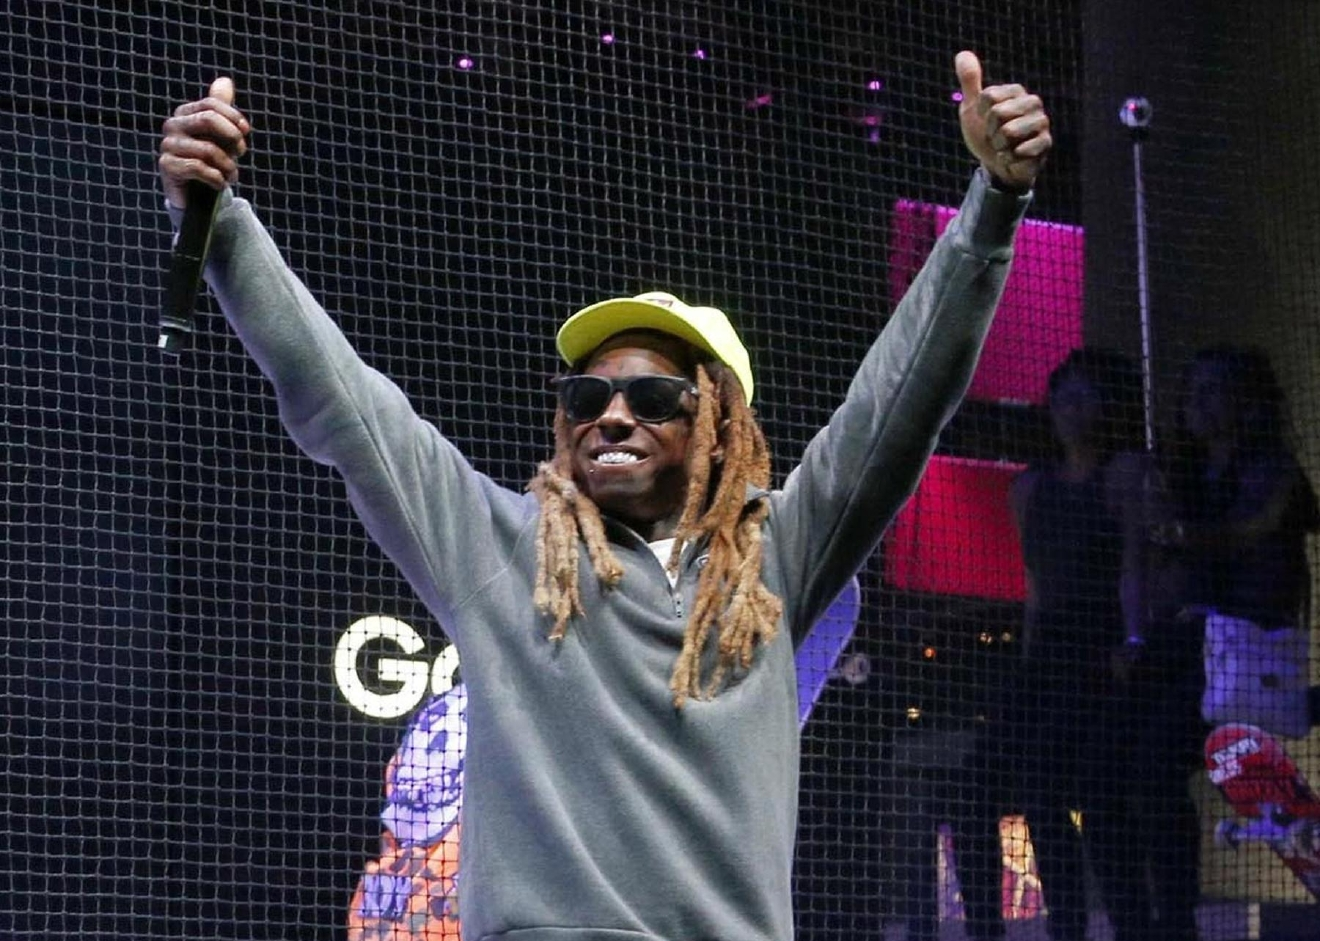 FILE - In this Wednesday, June 15, 2016 file photo, Rapper Lil Wayne performs at the Samsung exhibit at the Electronic Entertainment Expo in Los Angeles. (AP Photo/Nick Ut, File)